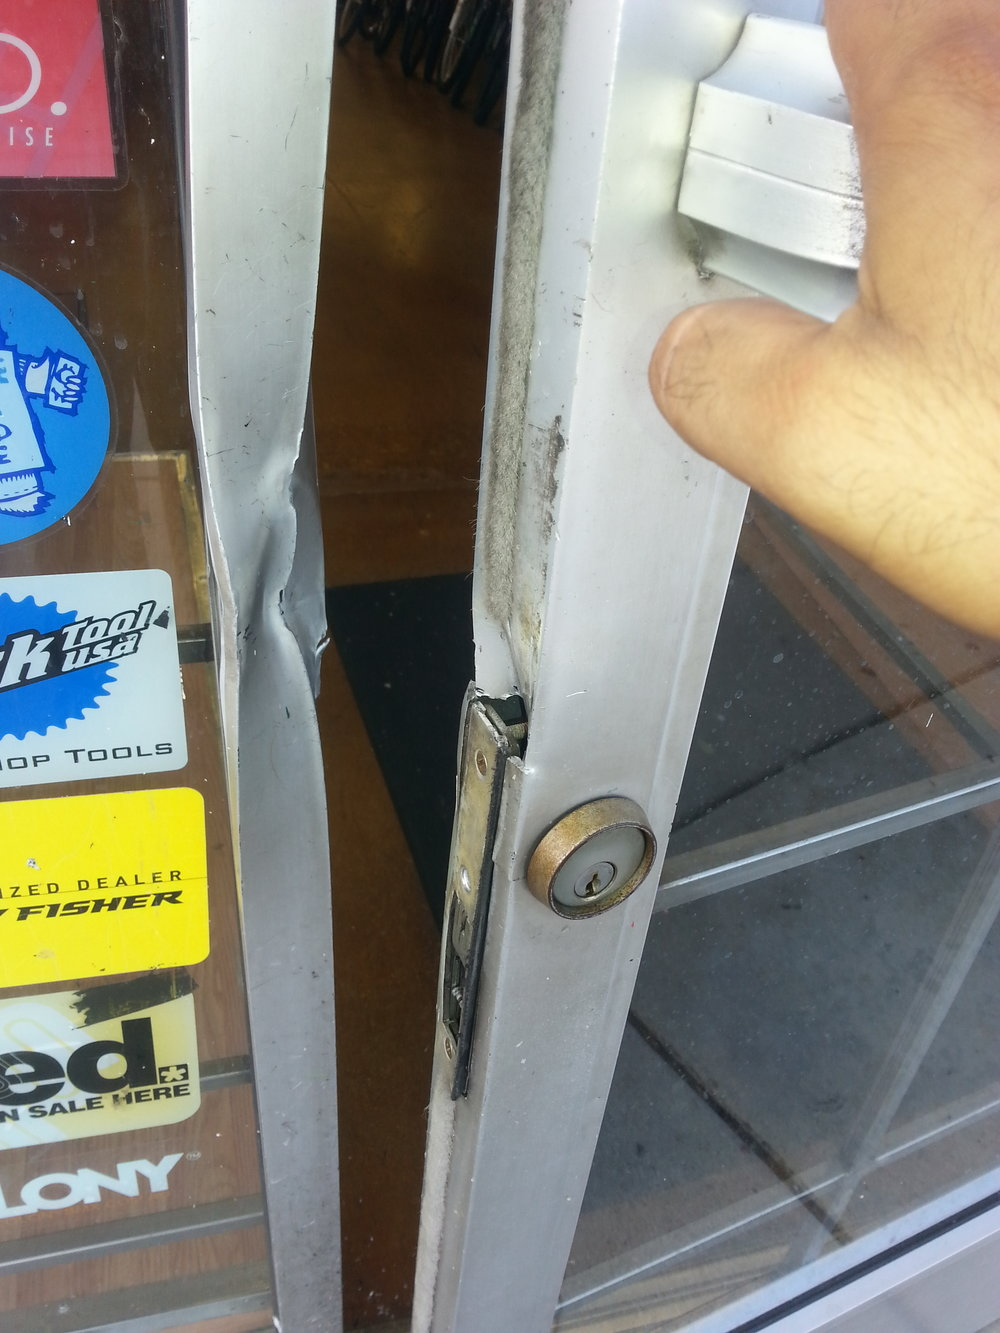 Example of a storefront door and frame damaged in a break-in robbery, Newhall CA